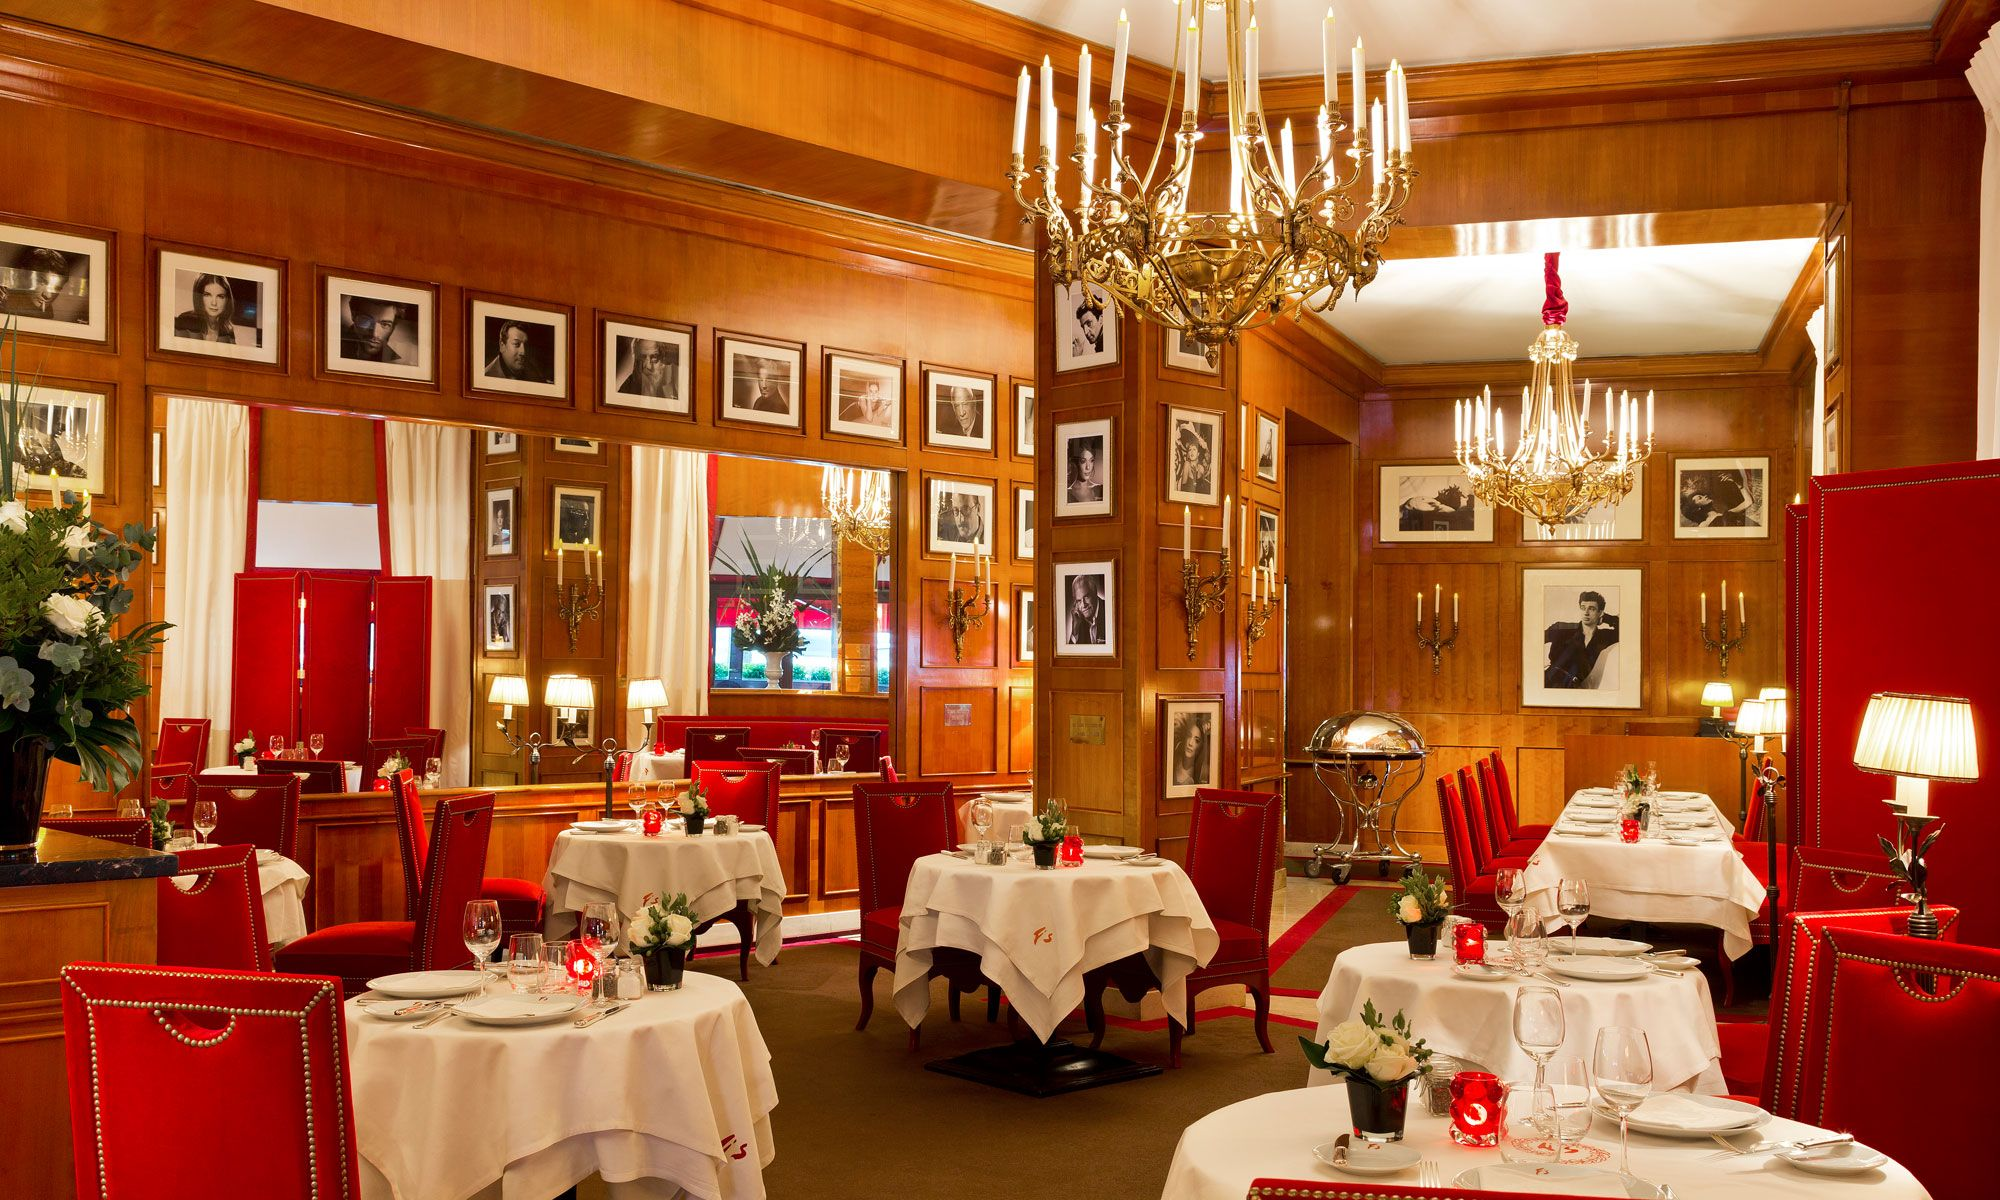 Review: The Legendary Le Fouquet's Restaurant in Paris